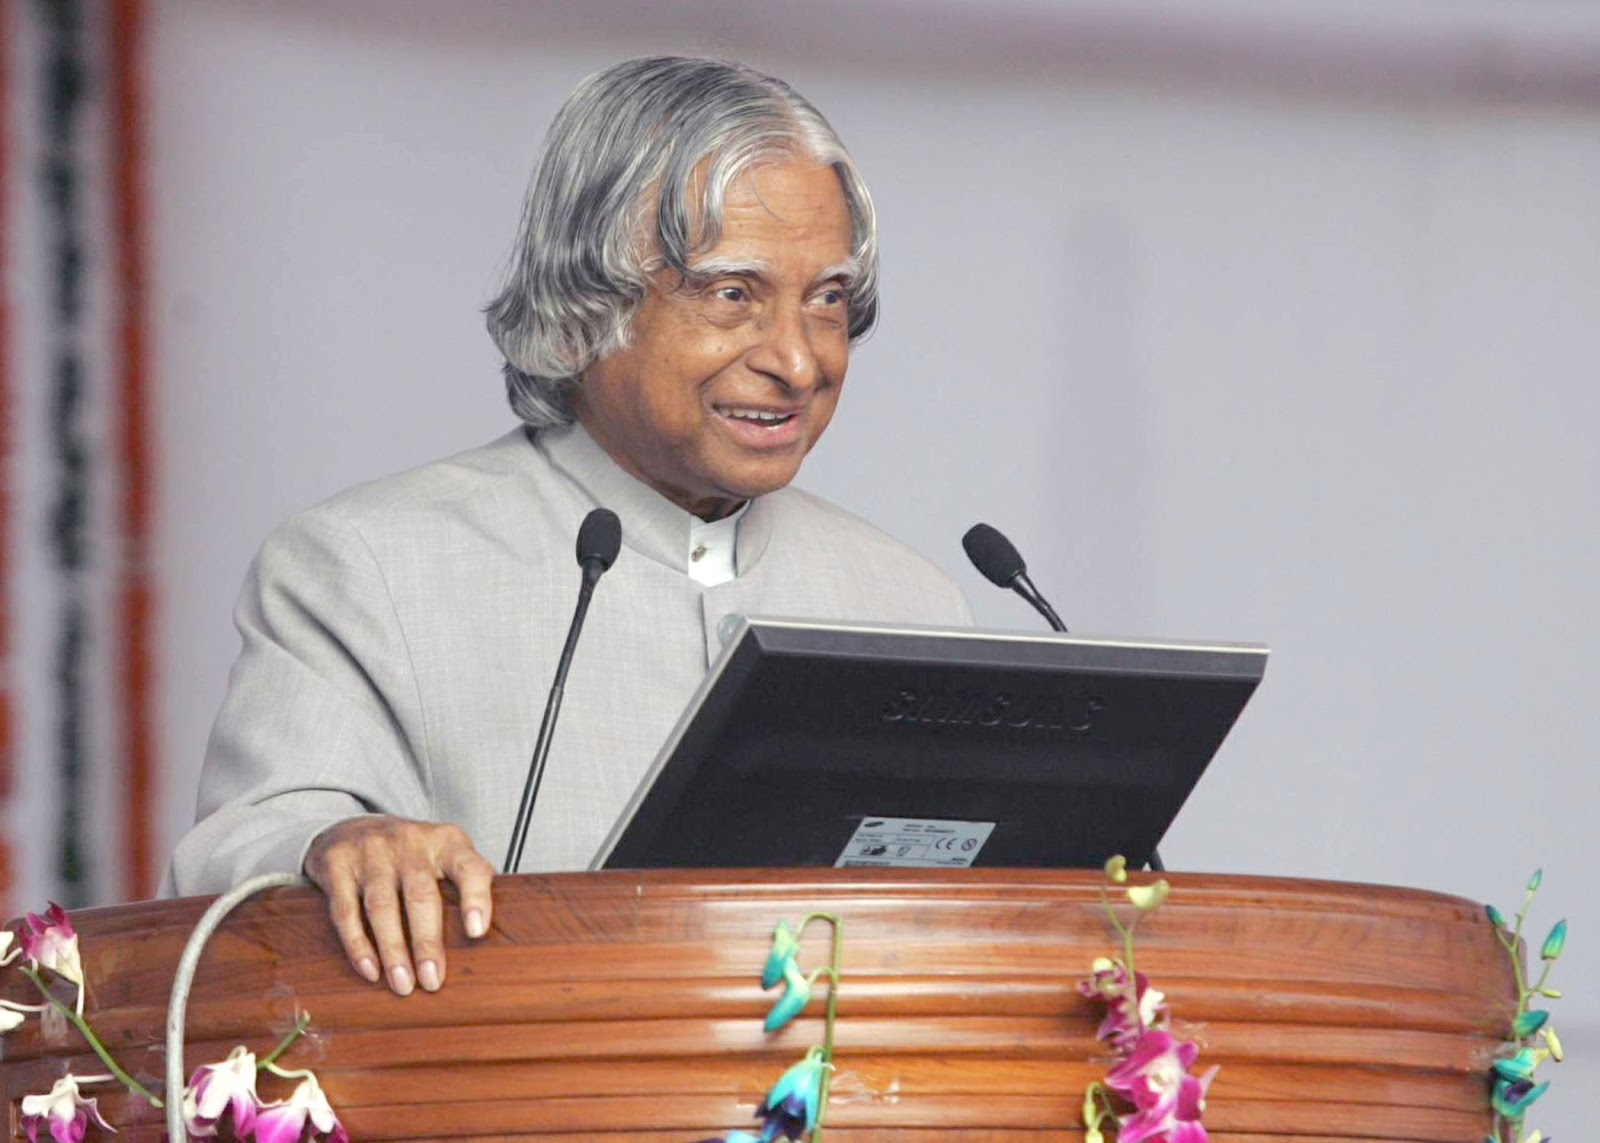 dr abdul kalam Apj abdul kalam, in full avul pakir jainulabdeen abdul kalam, (born october 15, 1931, rameswaram, india—died july 27, 2015, shillong), indian scientist and politician who played a leading role in the development of india's missile and nuclear weapons programs he was president of india from .